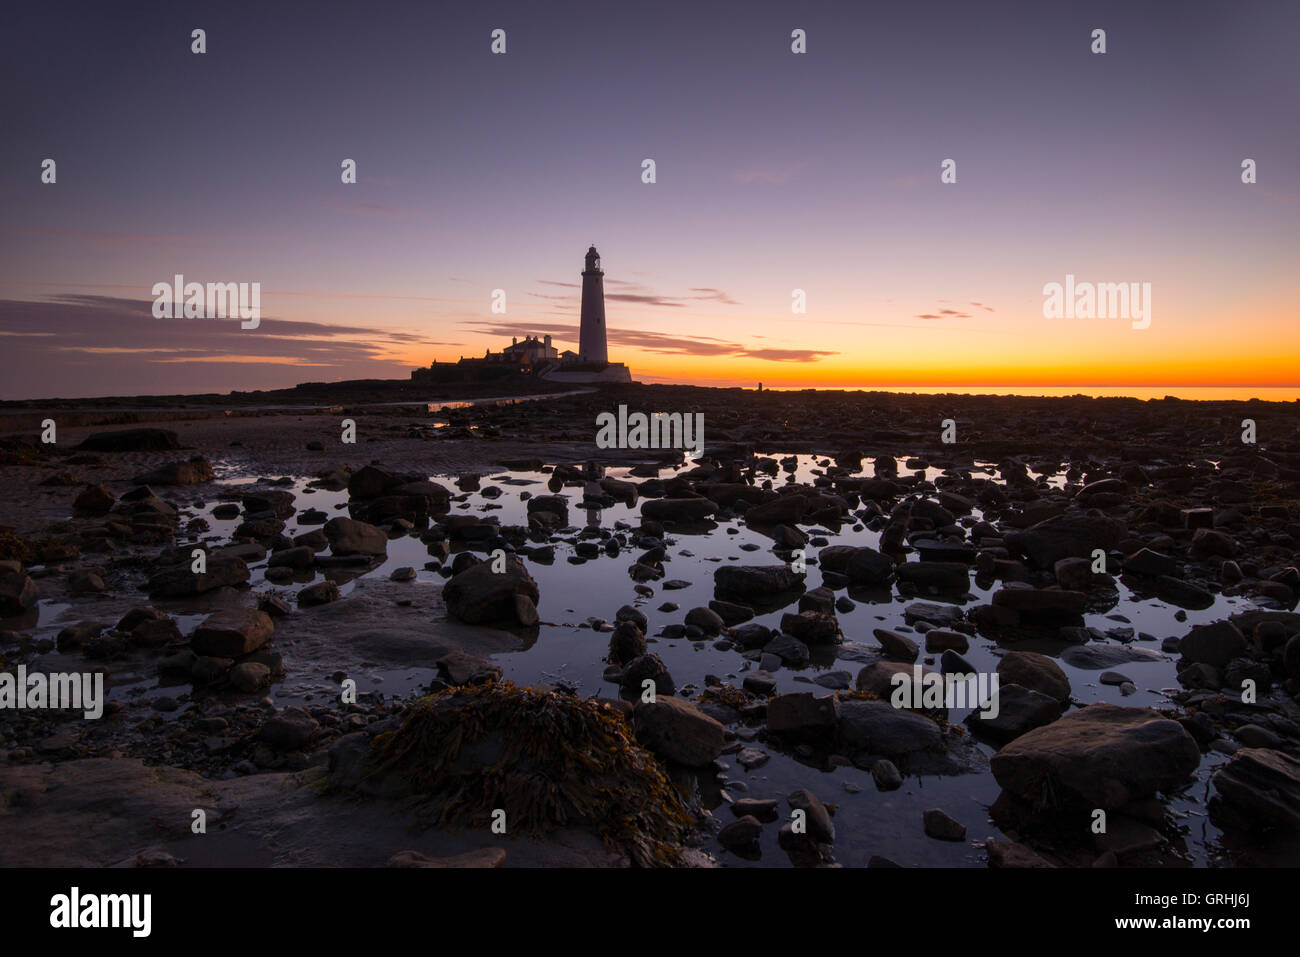 Sunrise at St Mary's Lighthouse, near Whitley Bay in Tyne and Wear England UK - Stock Image